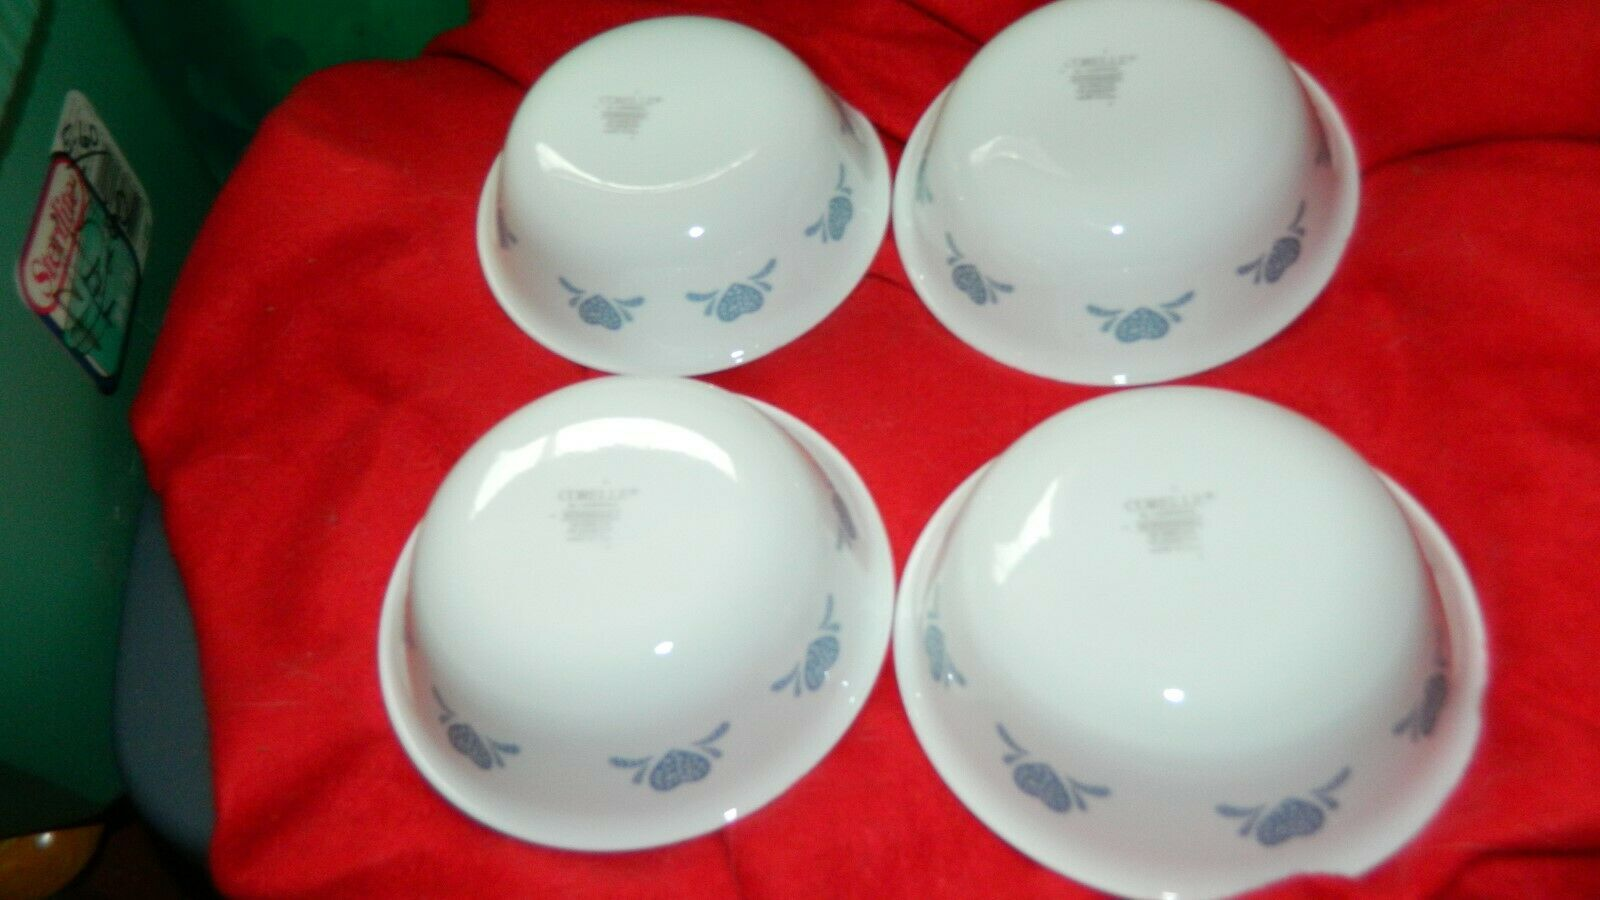 Primary image for CORELLE BLUE HEARTS SOUP/CEREAL BOWLS 18 OUNCE GENTLY USED x 4 FREE USA SHIP